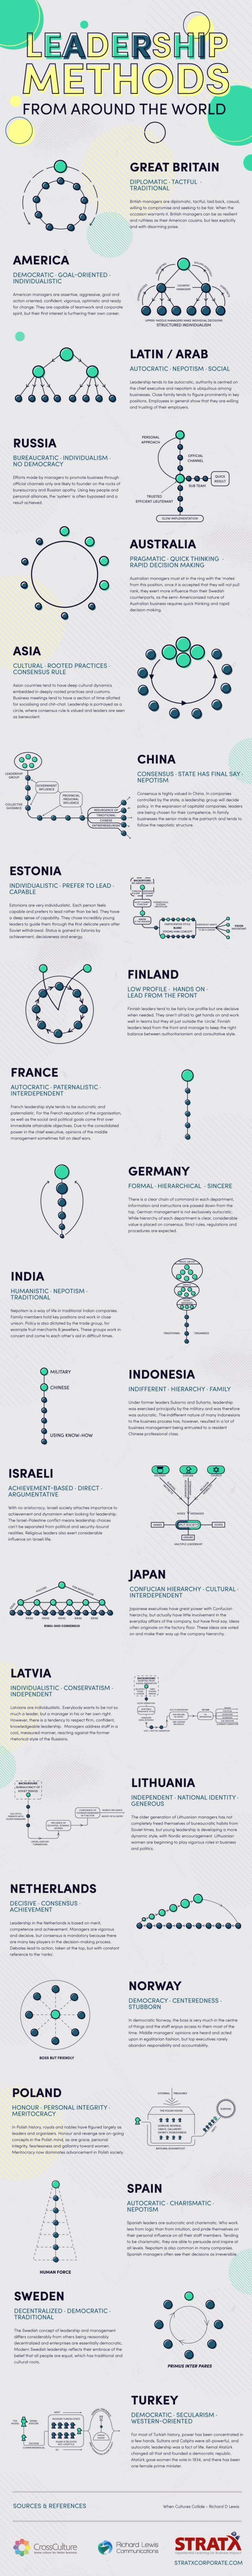 Multinational companies are anything but a rarity in today's world, yet that doesn't mean all leadership styles look alike.Knowing what to expect when working overseas is an important part of forging productive connections, so take a look at how the leadership game is played around the world in this infographic from StratX.Via StratX.Lead more effectively with infographics.